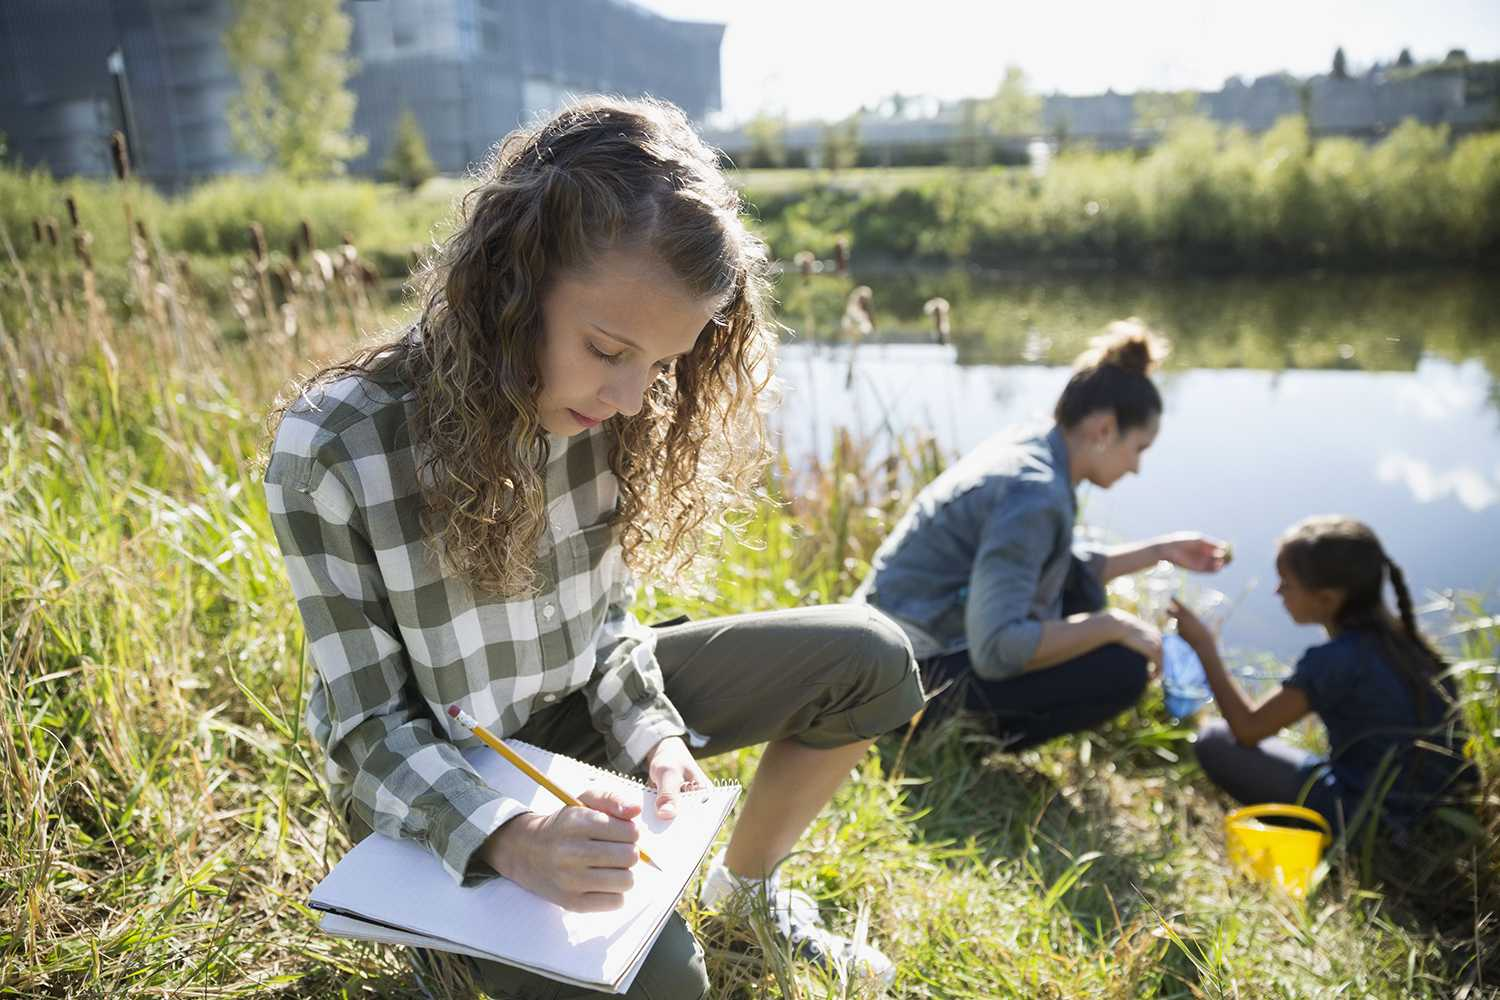 girl taking notes in a field by a pond